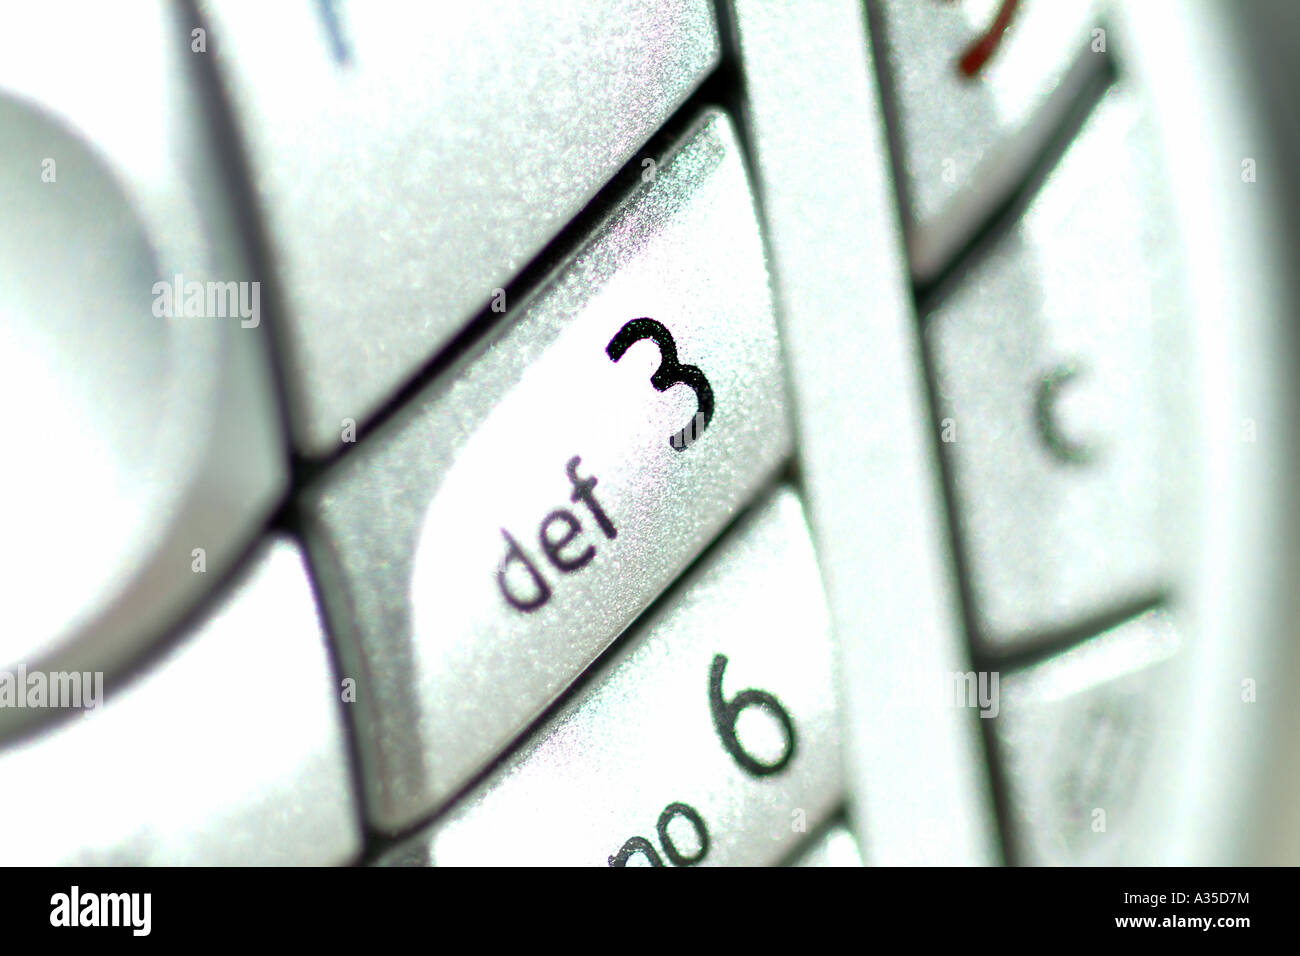 Keypad of a Nokia 6630 mobile phone UK Stock Photo: 10676263